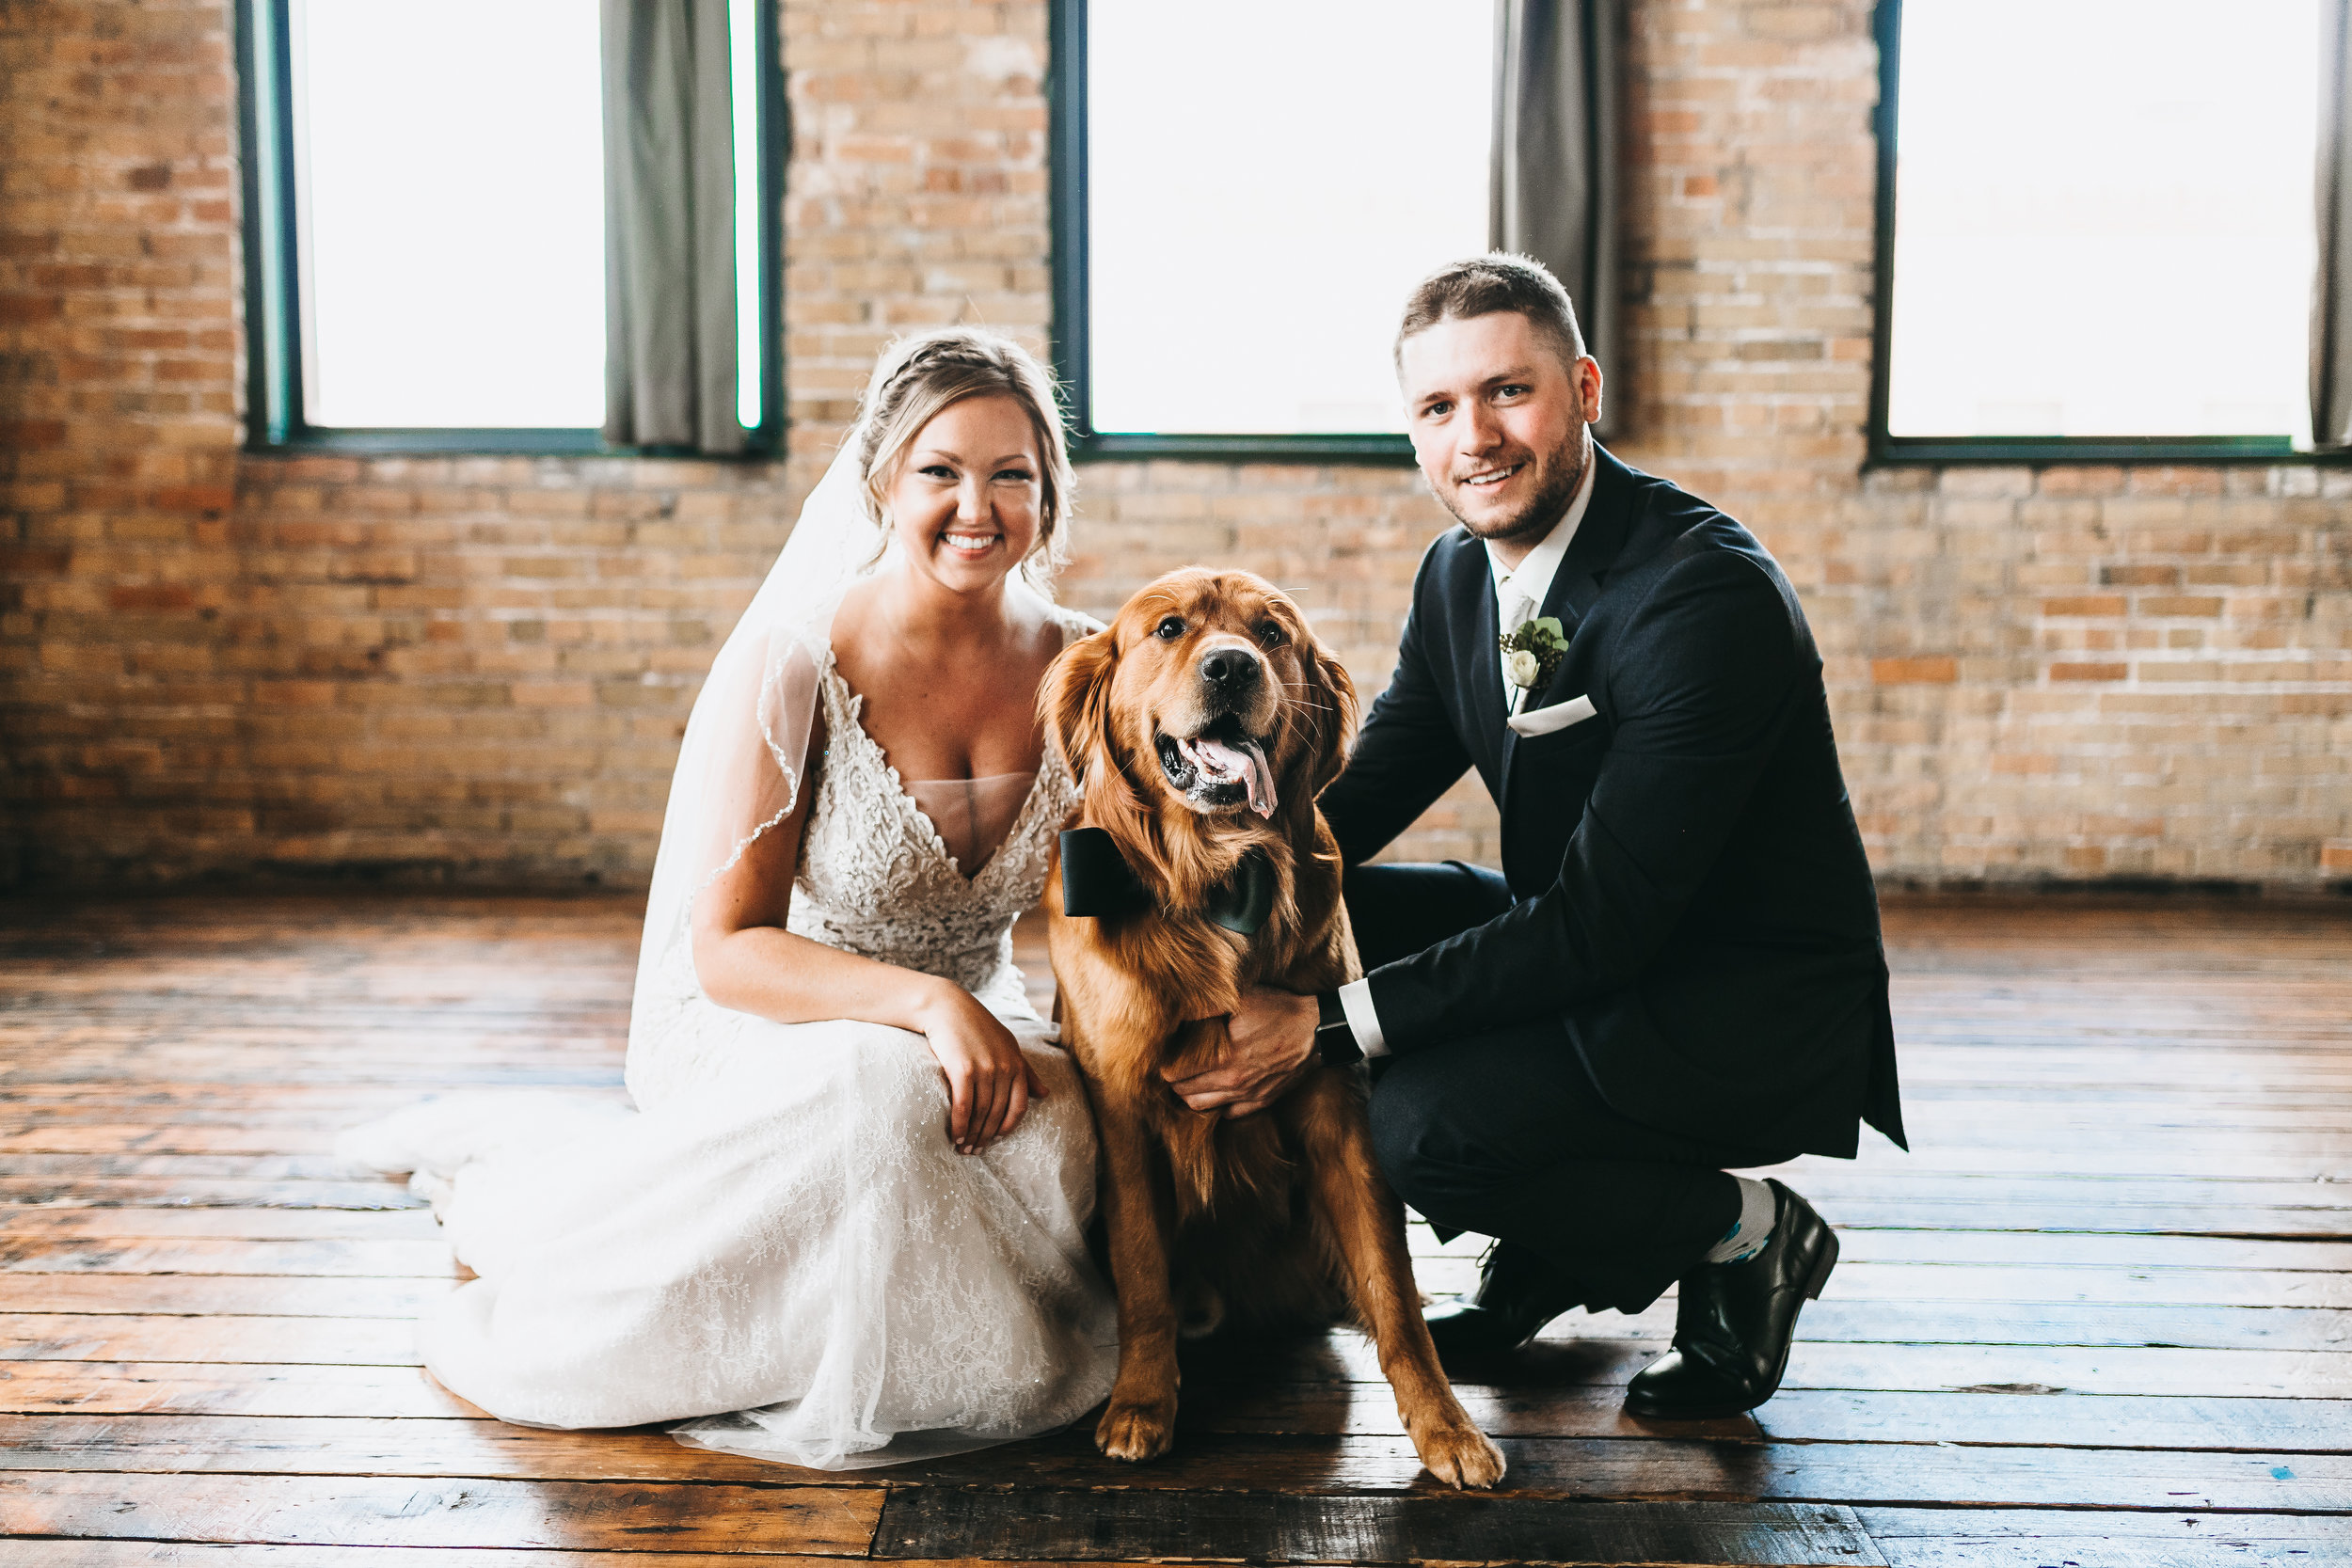 Paige + Connor - CLYDE IRON WORKS